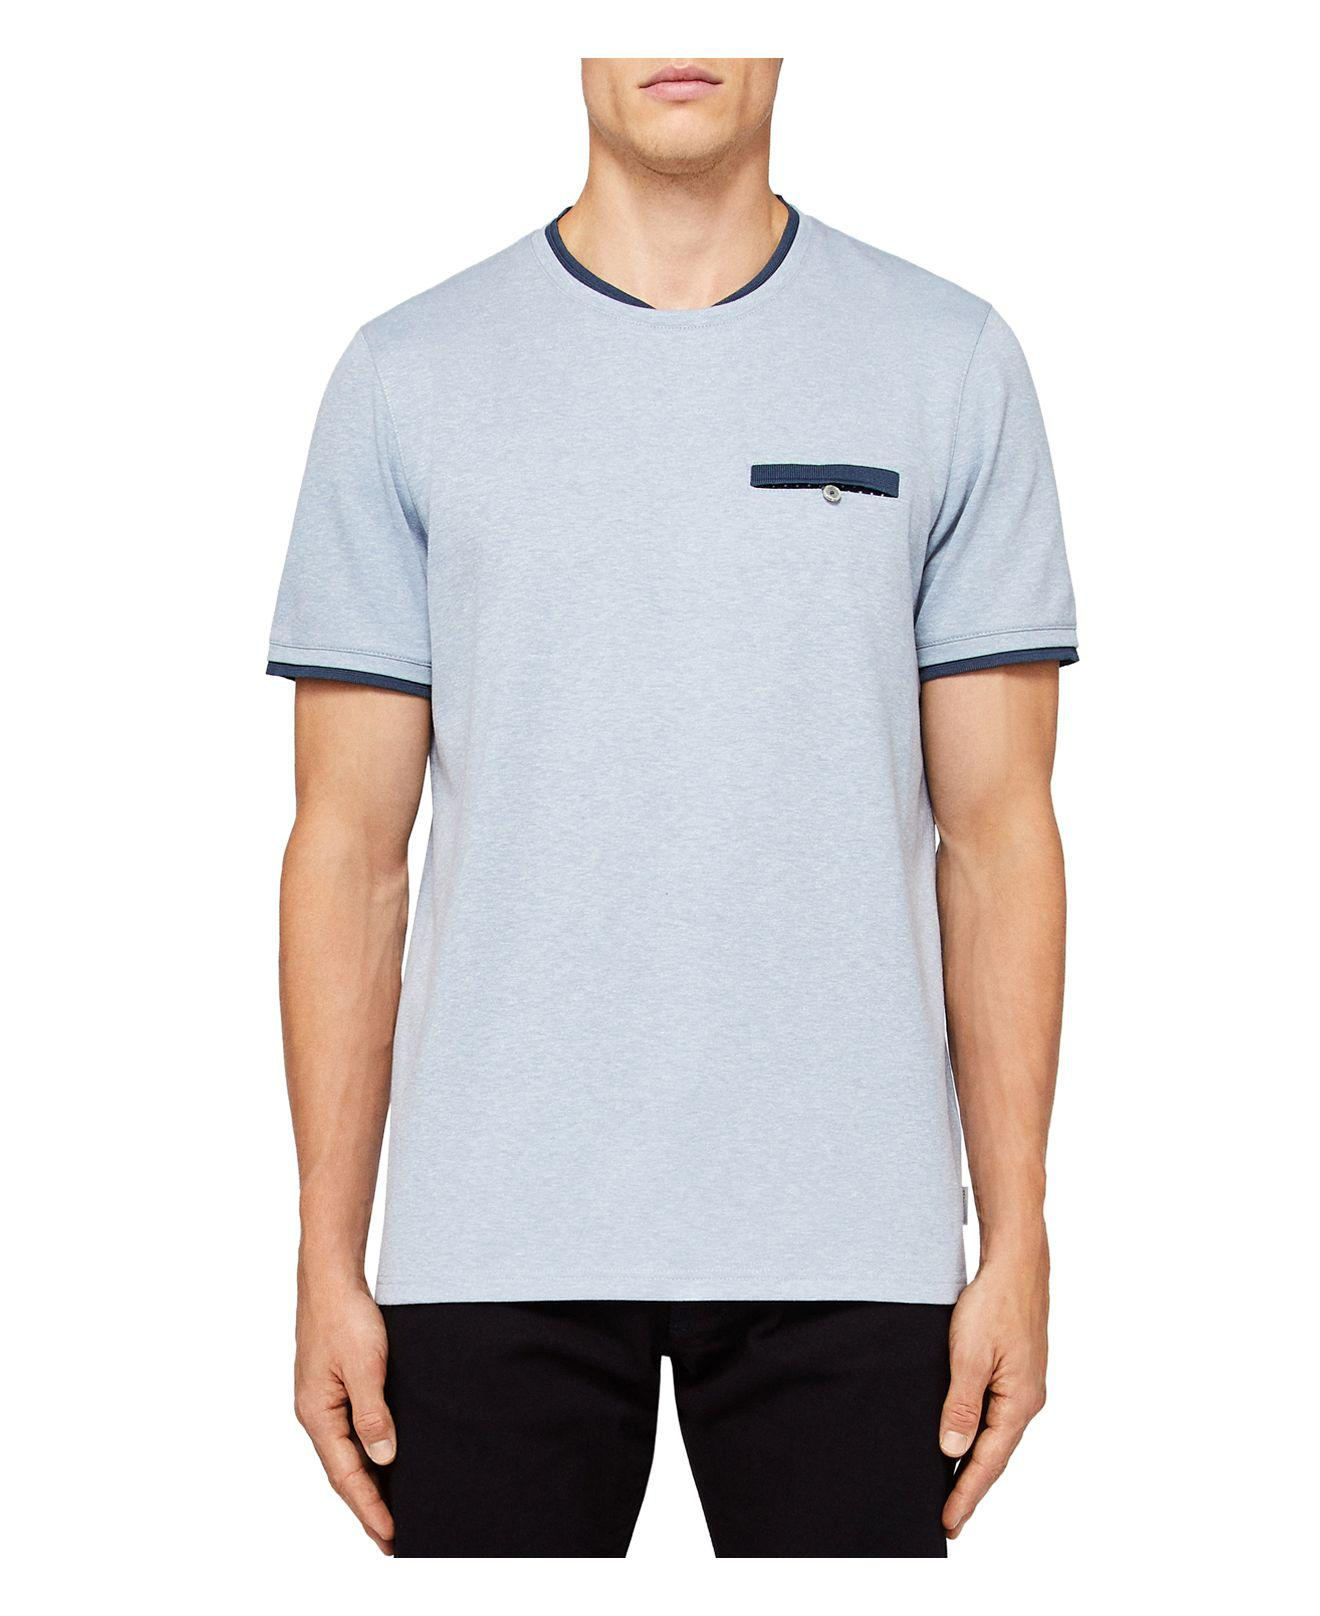 d8a8e458 Ted Baker Climb Mouline Tee in Blue for Men - Lyst